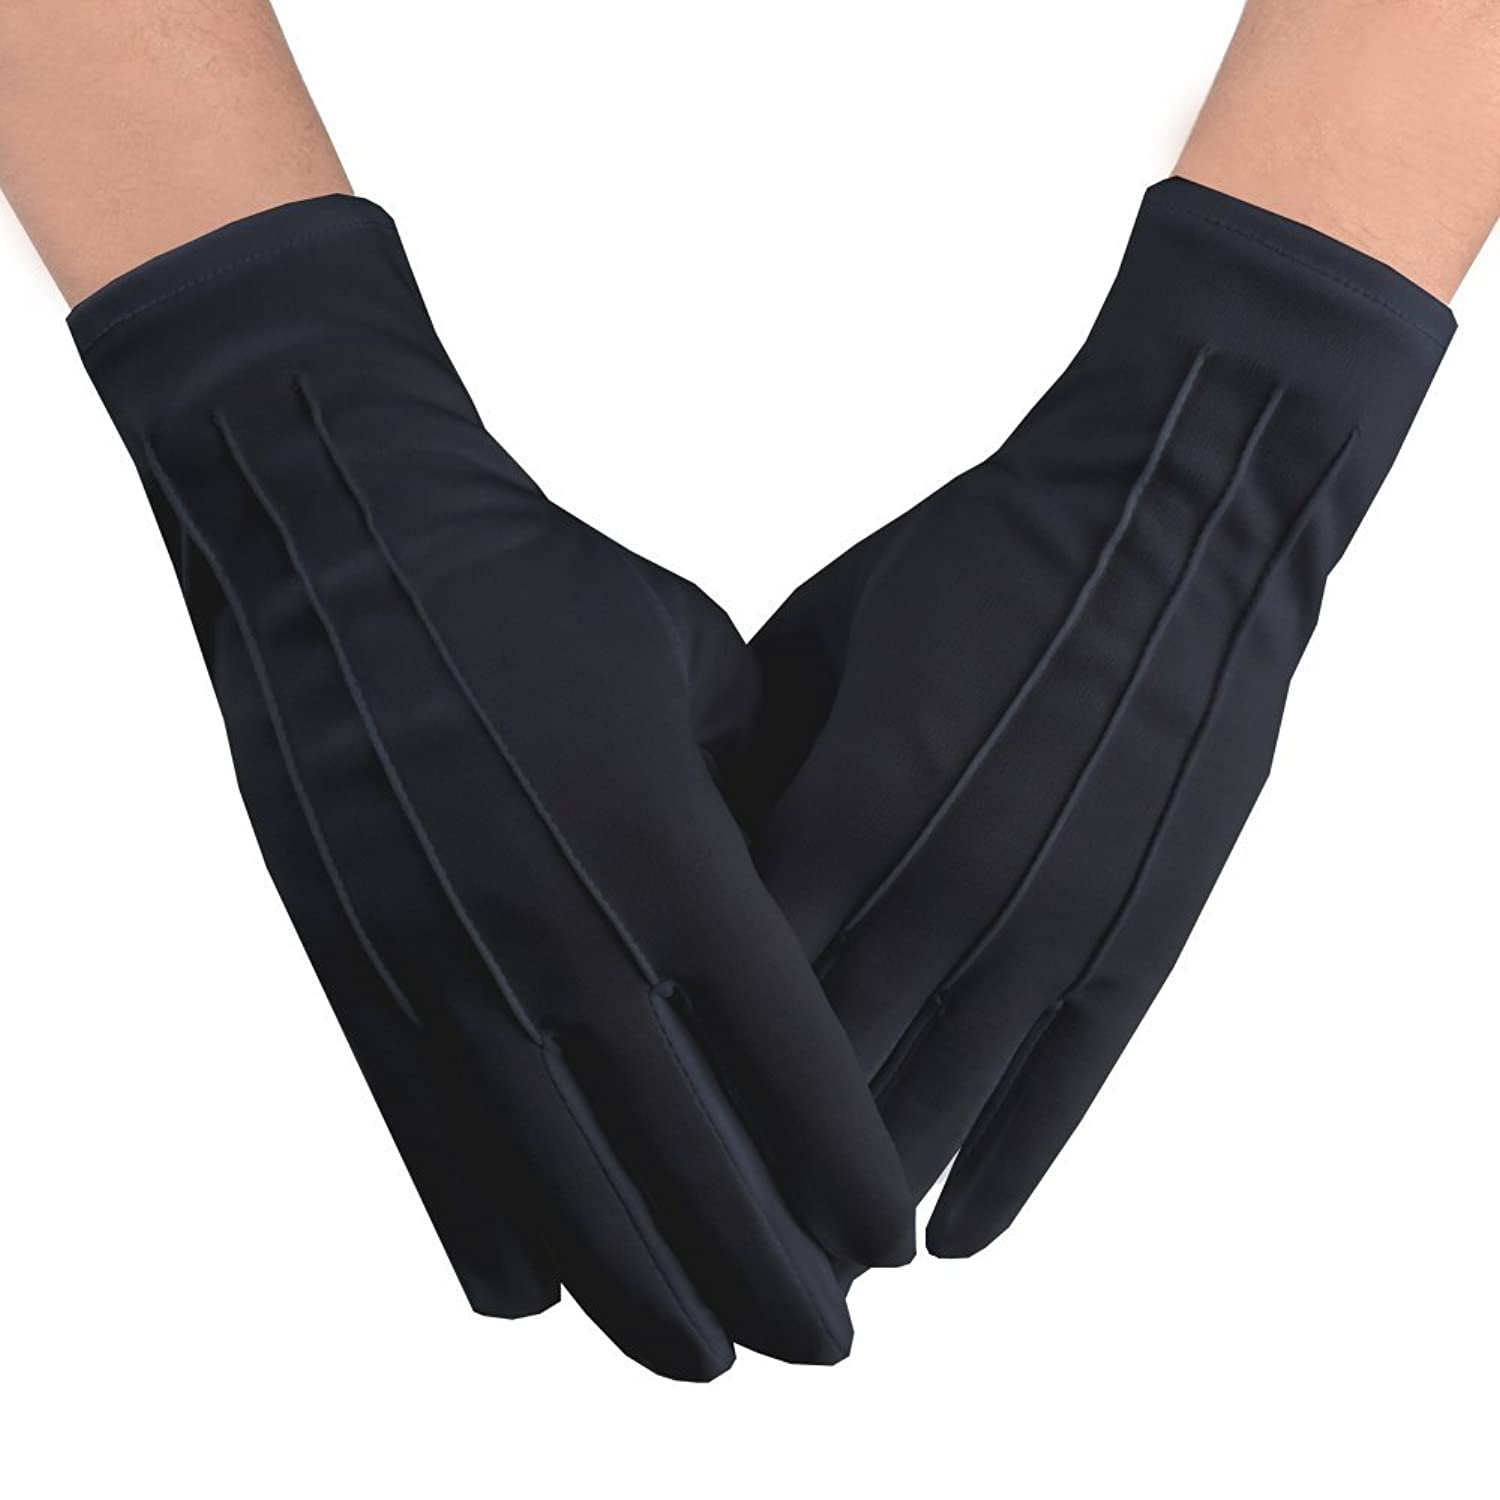 1910s Men's Edwardian Fashion and Clothing Guide Men Black Cotton Gloves  AT vintagedancer.com